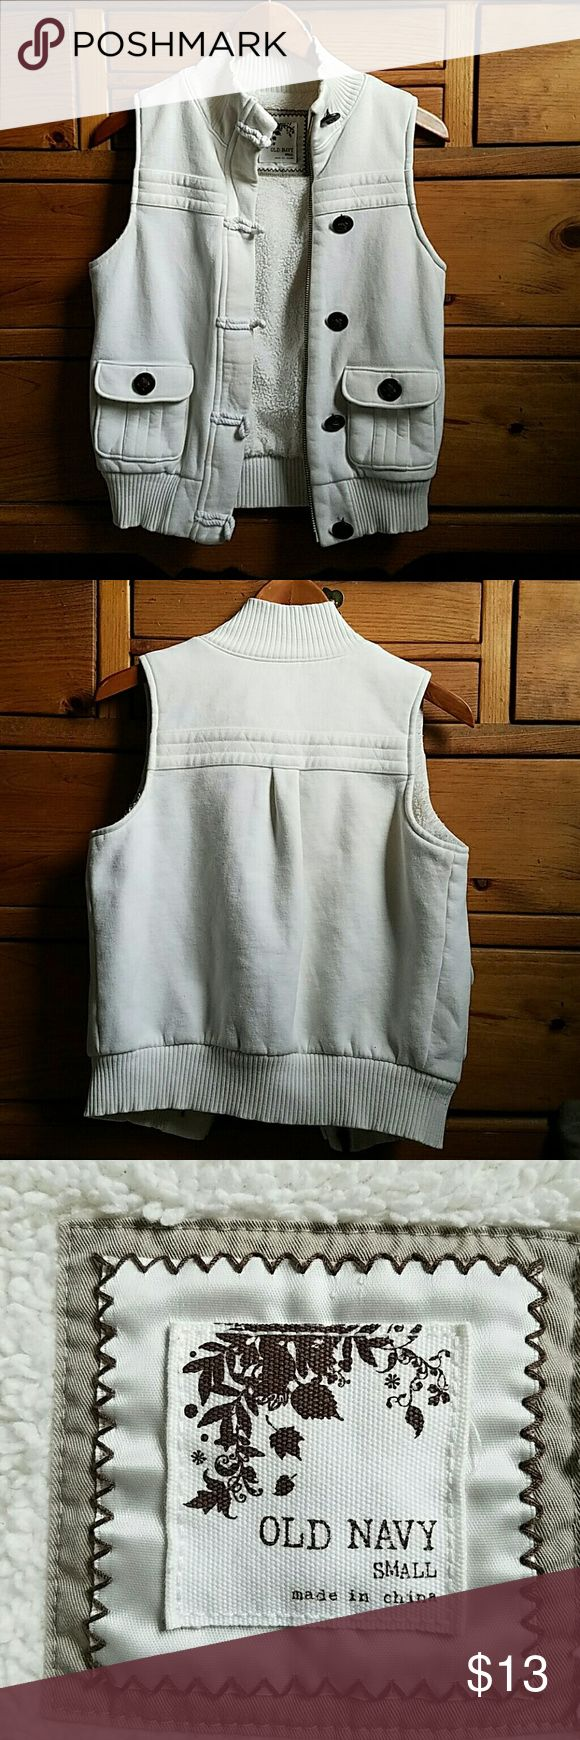 Old Navy Cream Vest Cream colored Old Navy vest with brown buttons and toggle closures over a zipper. Very cozy, with fuzzy fleece lining. Old Navy Jackets & Coats Vests